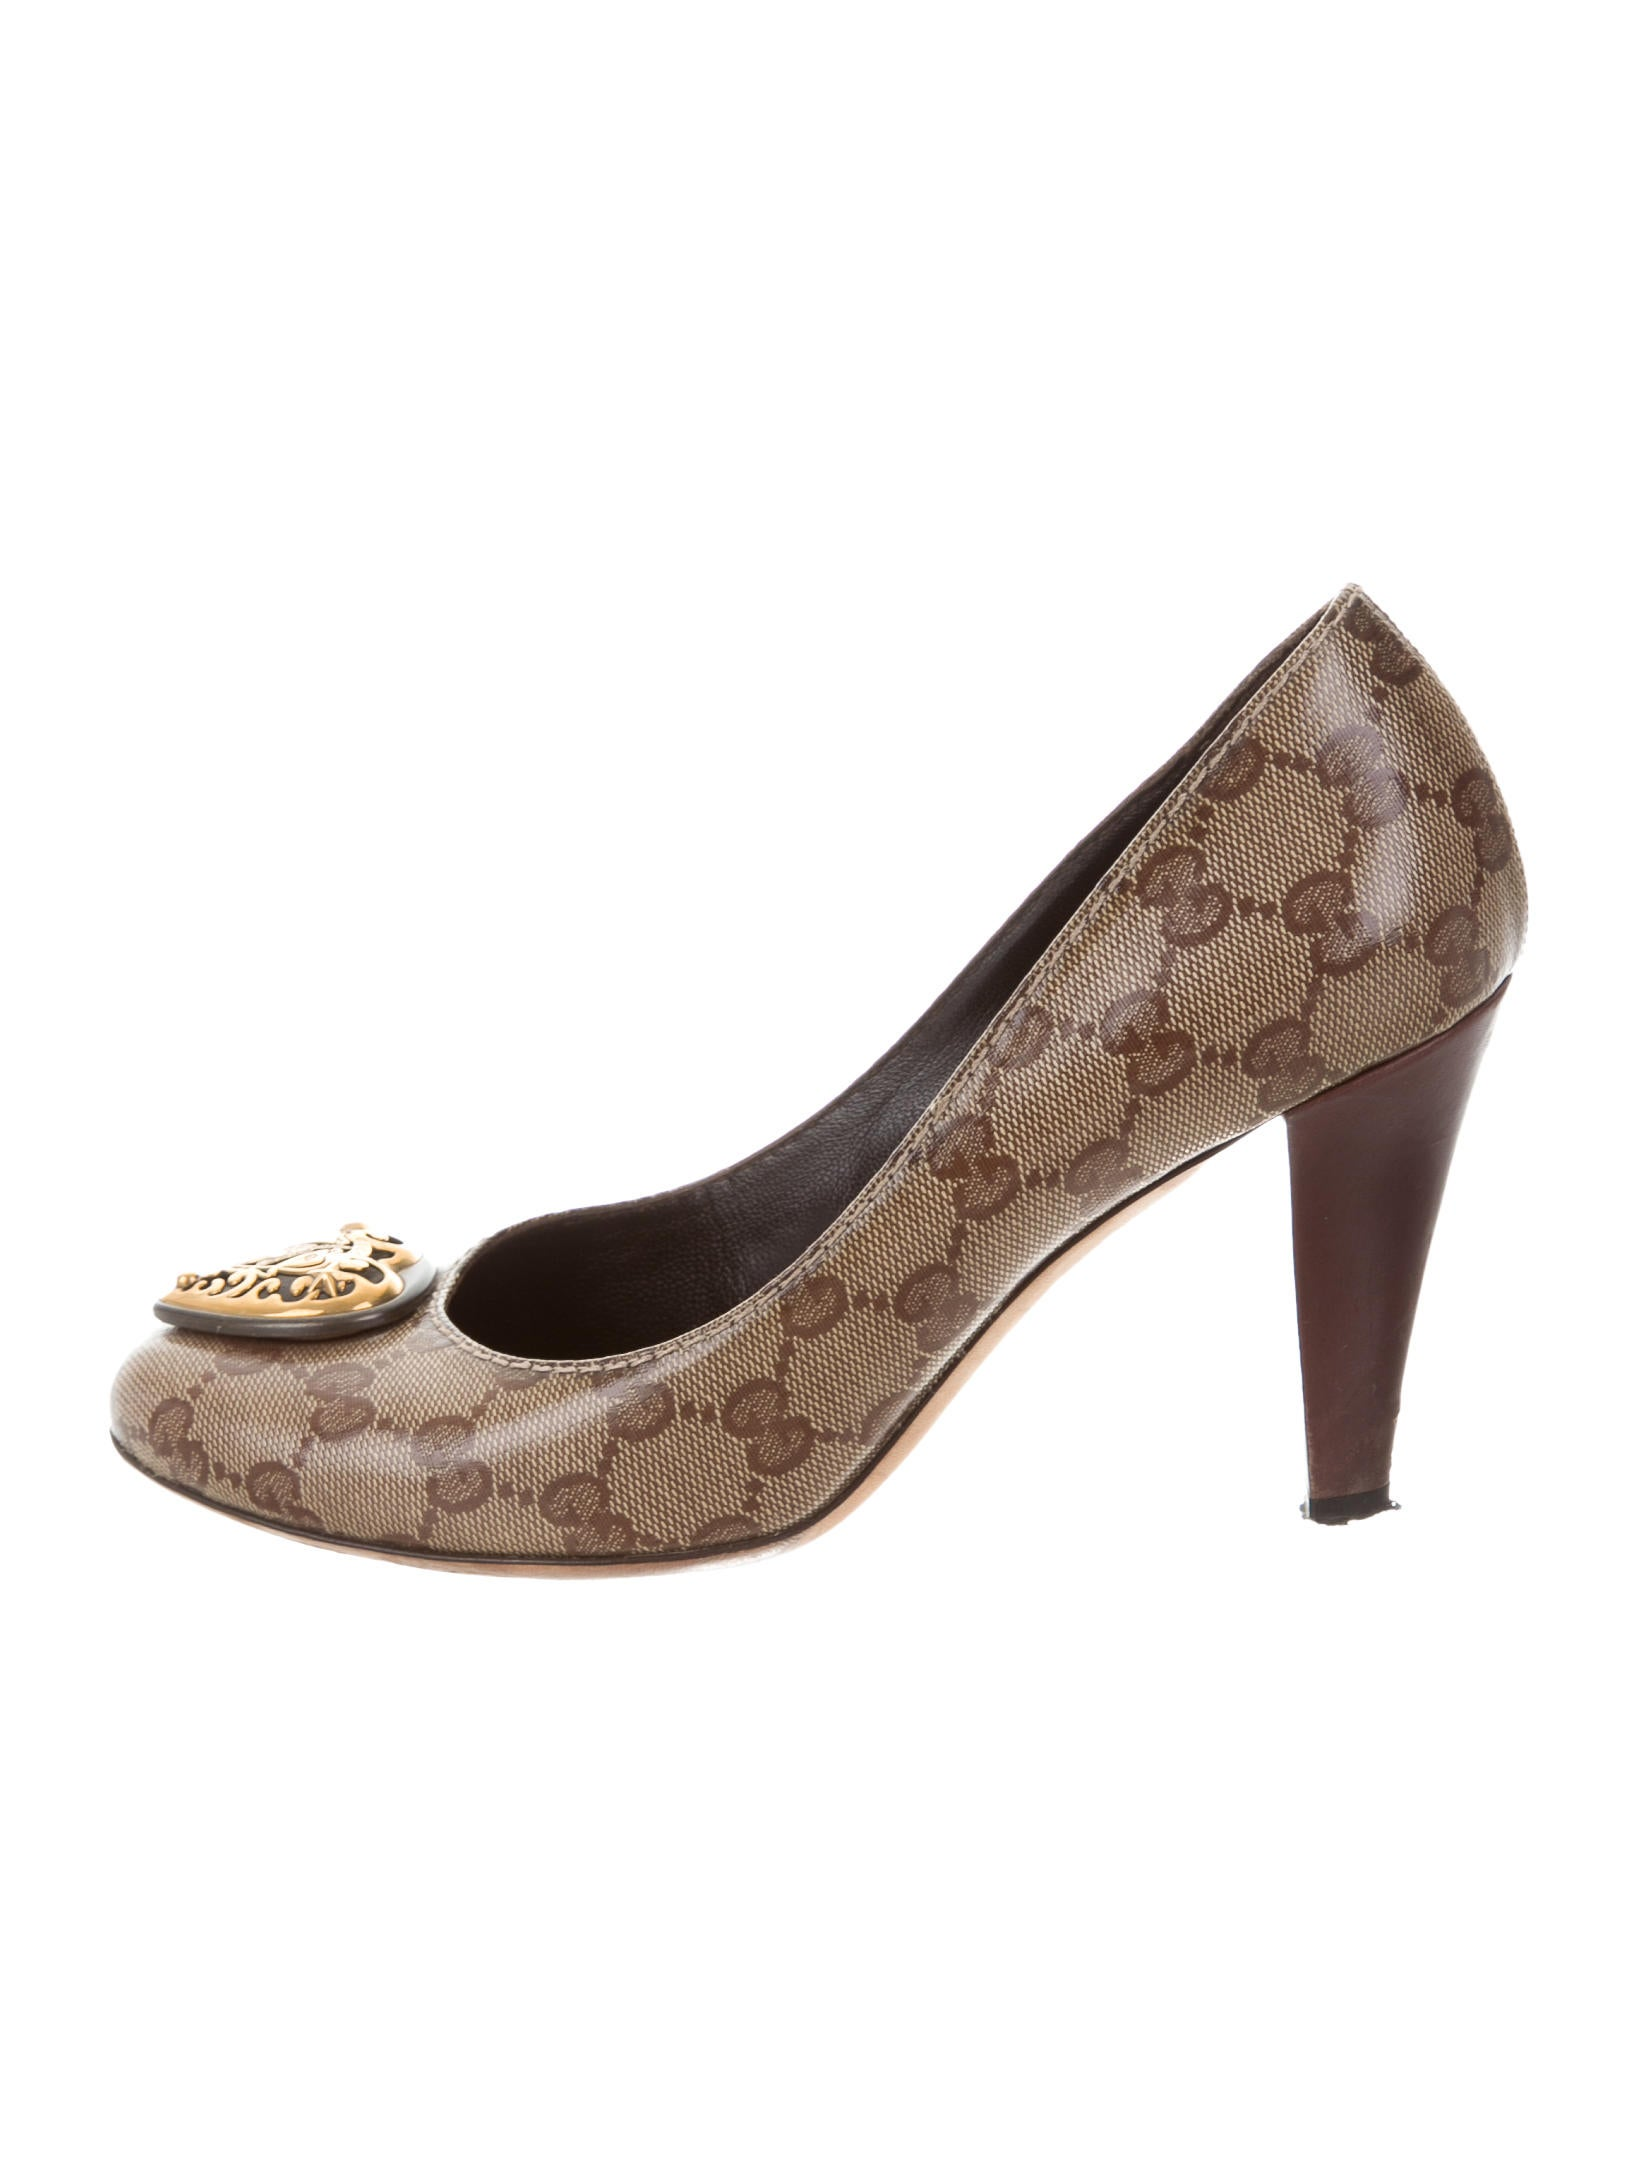 Gucci Guccissima Hysteria Embellished Pumps - Shoes - GUC169598 ... 6402dbcc2f8